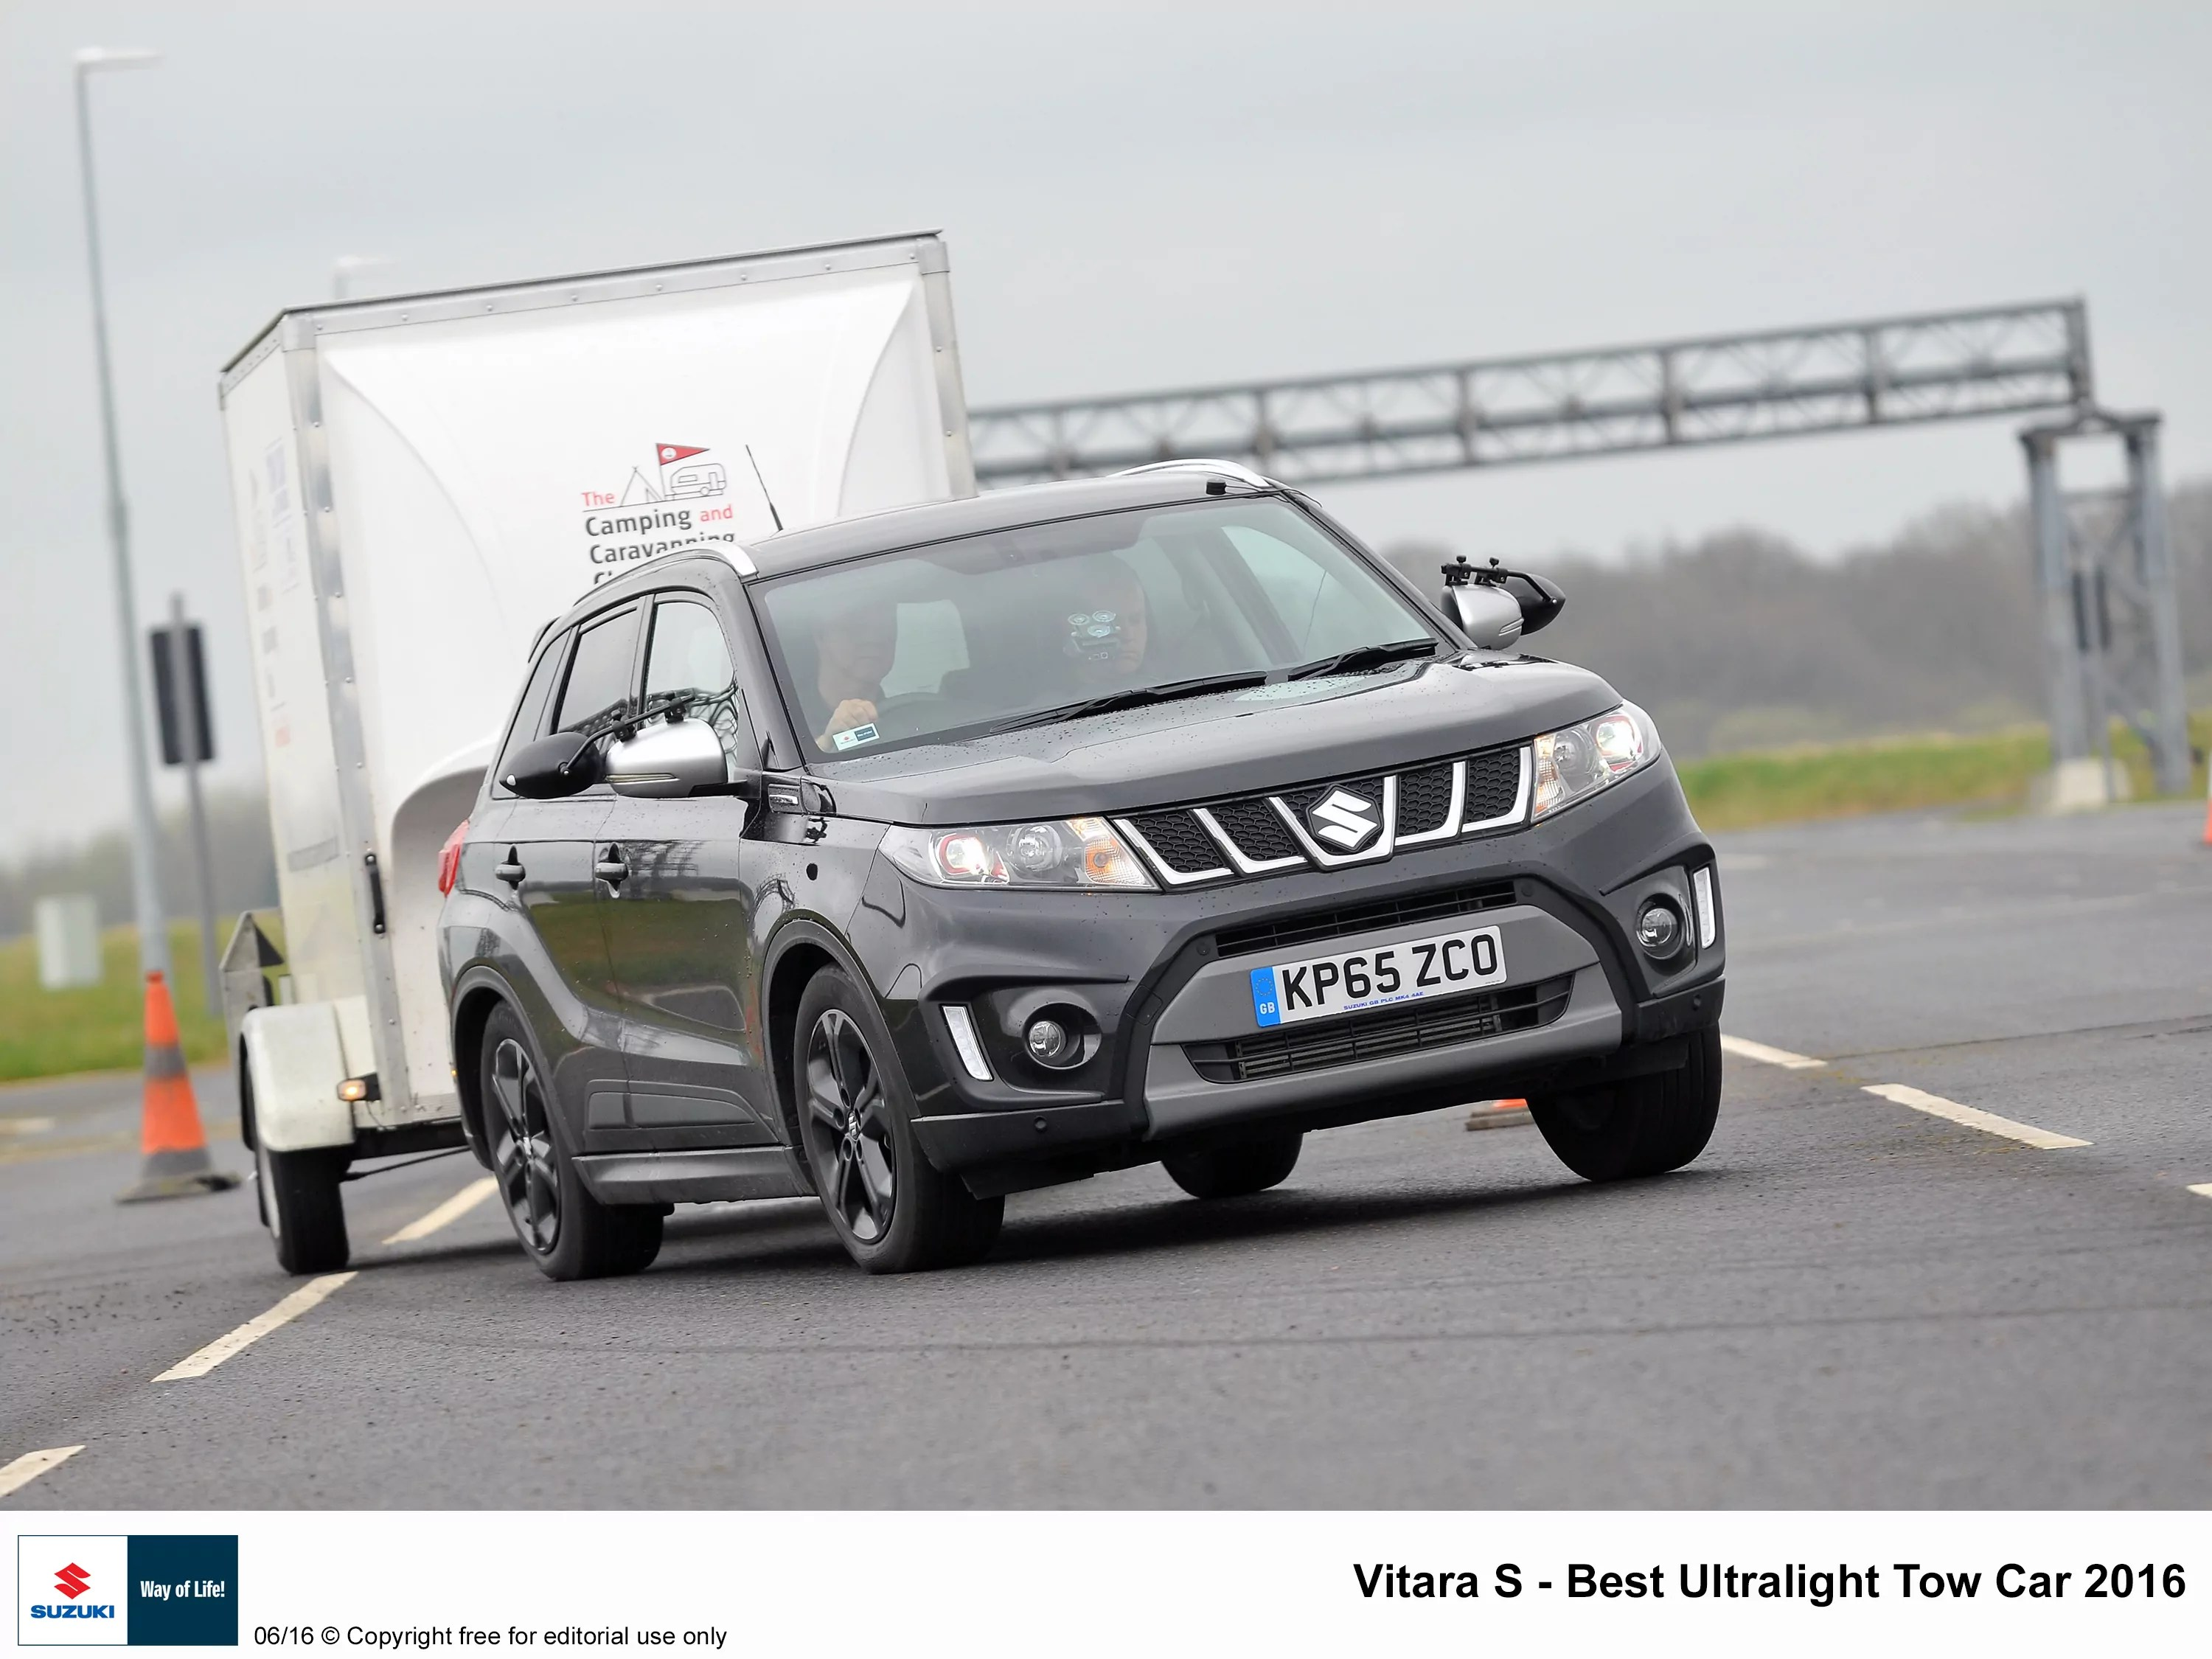 Suzuki Vitara Boosterjet wins best ultralight tow Car 2016. T W White & Sons